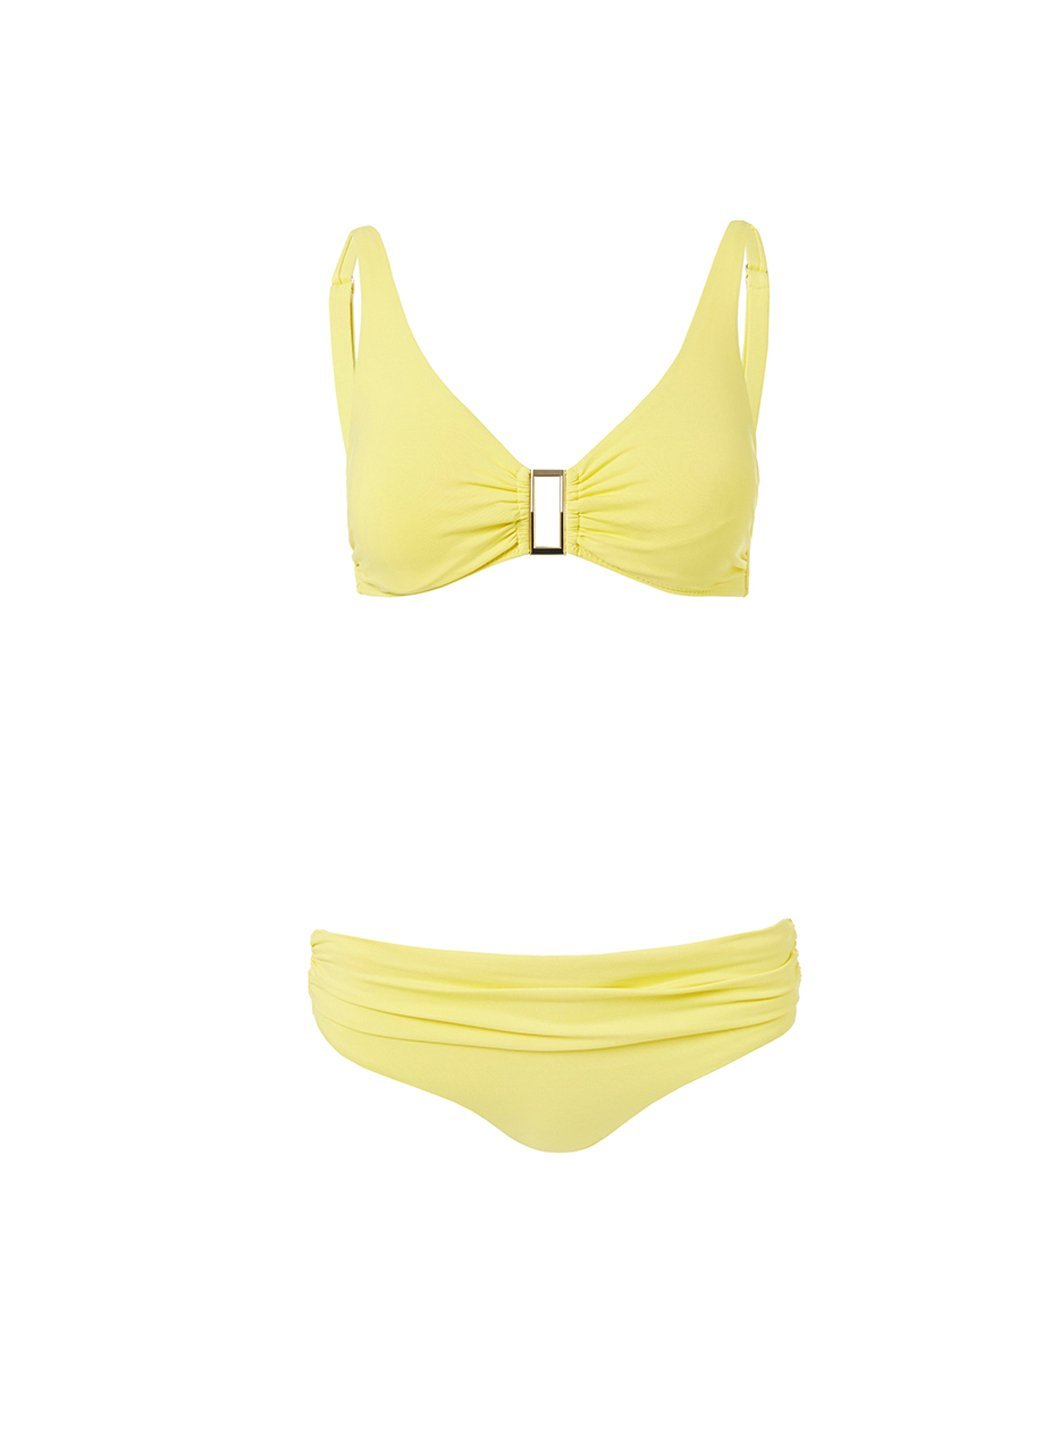 belair yellow overtheshoulder supportive bikini 2019